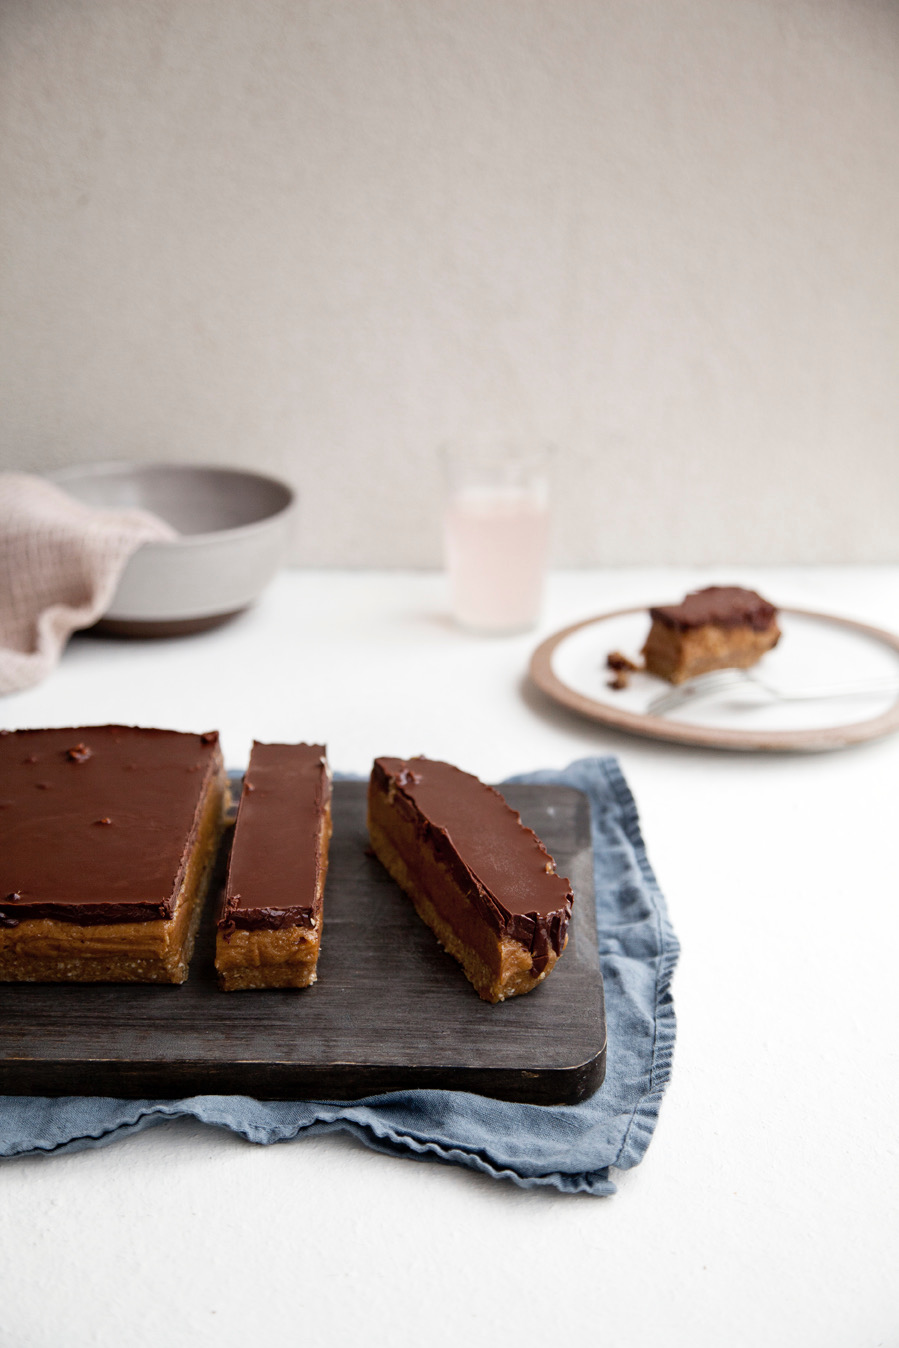 Caramel Slice // Kenkō Kitchen. Image taken from the Kenkō Kitchen Cookbook. Cookbook out now through Hardie Grant/Rizzoli. Photography by Elisa Watson, styling by Kate Bradley (Kenkō Kitchen) and Sally Bradley.